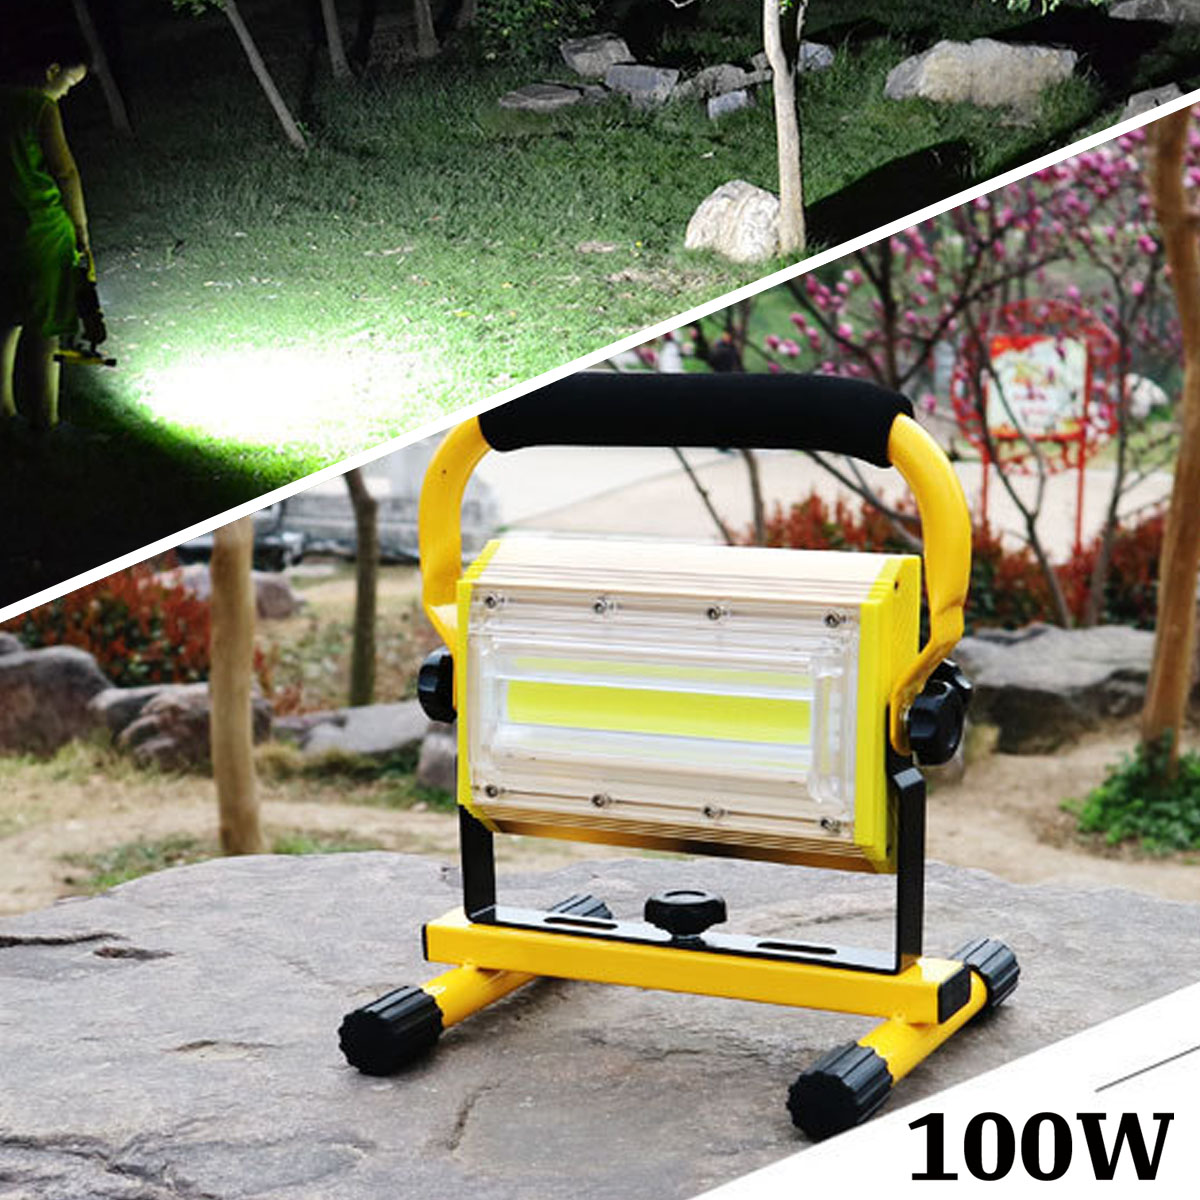 100W 2400lm Flood Light Powerful Waterproof Rechargeable LED Tactical Camping Fishing Working Torch Flash Lamp Flashlight protable led flashlight rechargeable hand searching light flash lamp torch night working camping long range lanterna powerful